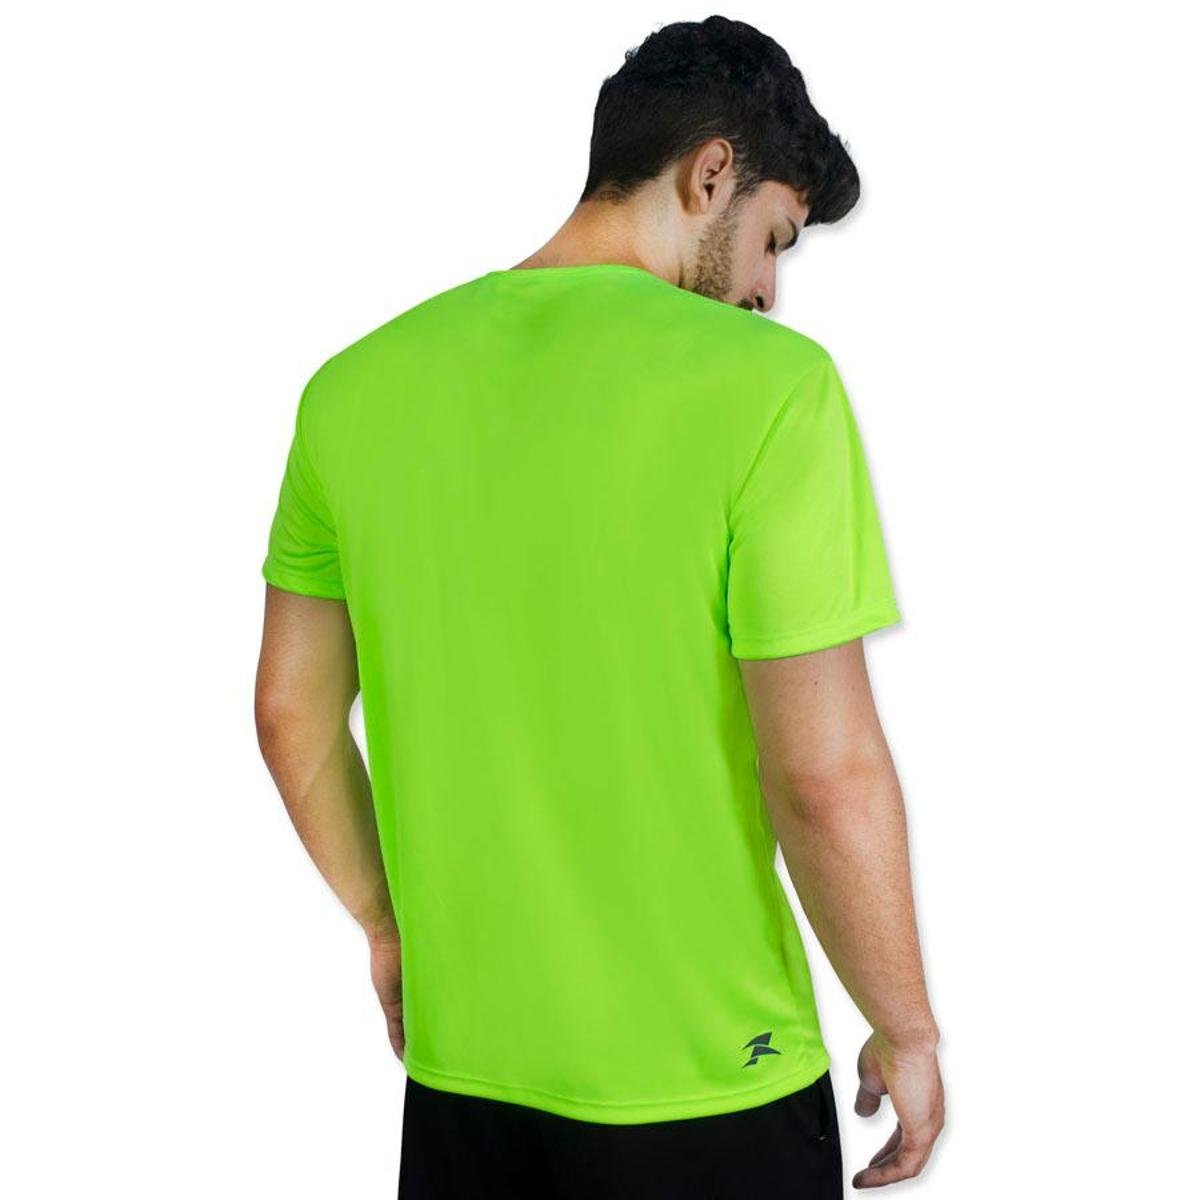 Color Camiseta Limão Dry Verde Dry Color SS Workout Verde Muvin Camiseta Workout Limão Muvin SS rrAdwq